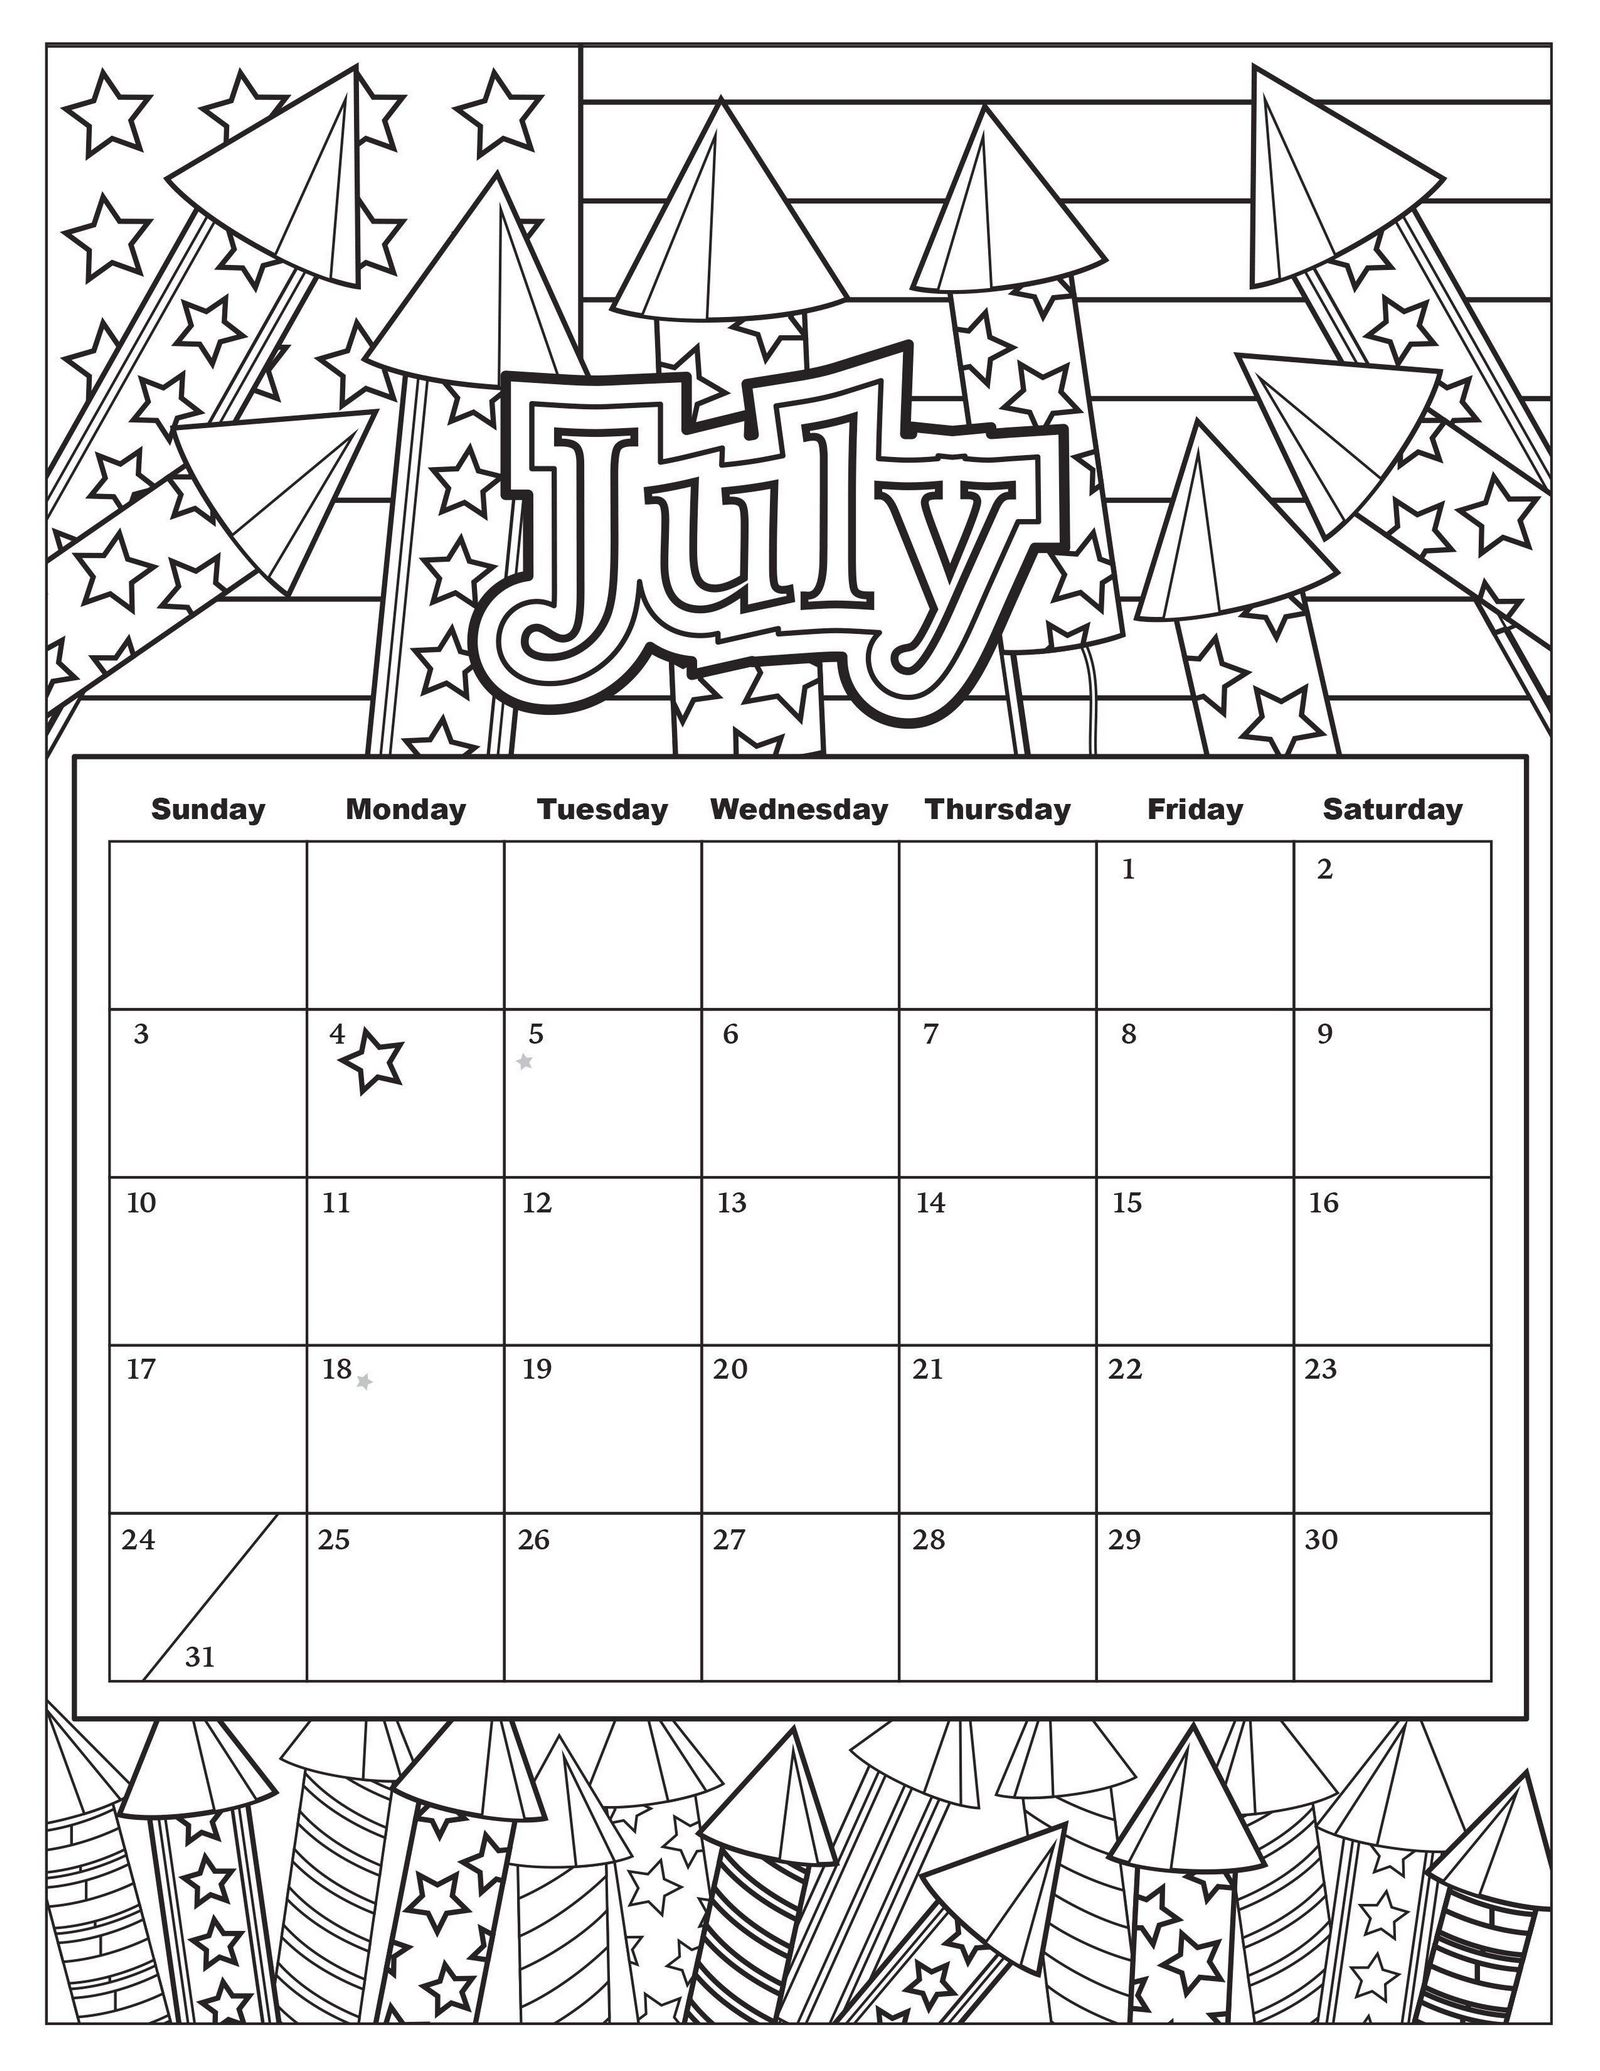 July Calendar with Fireworks theme coloring page